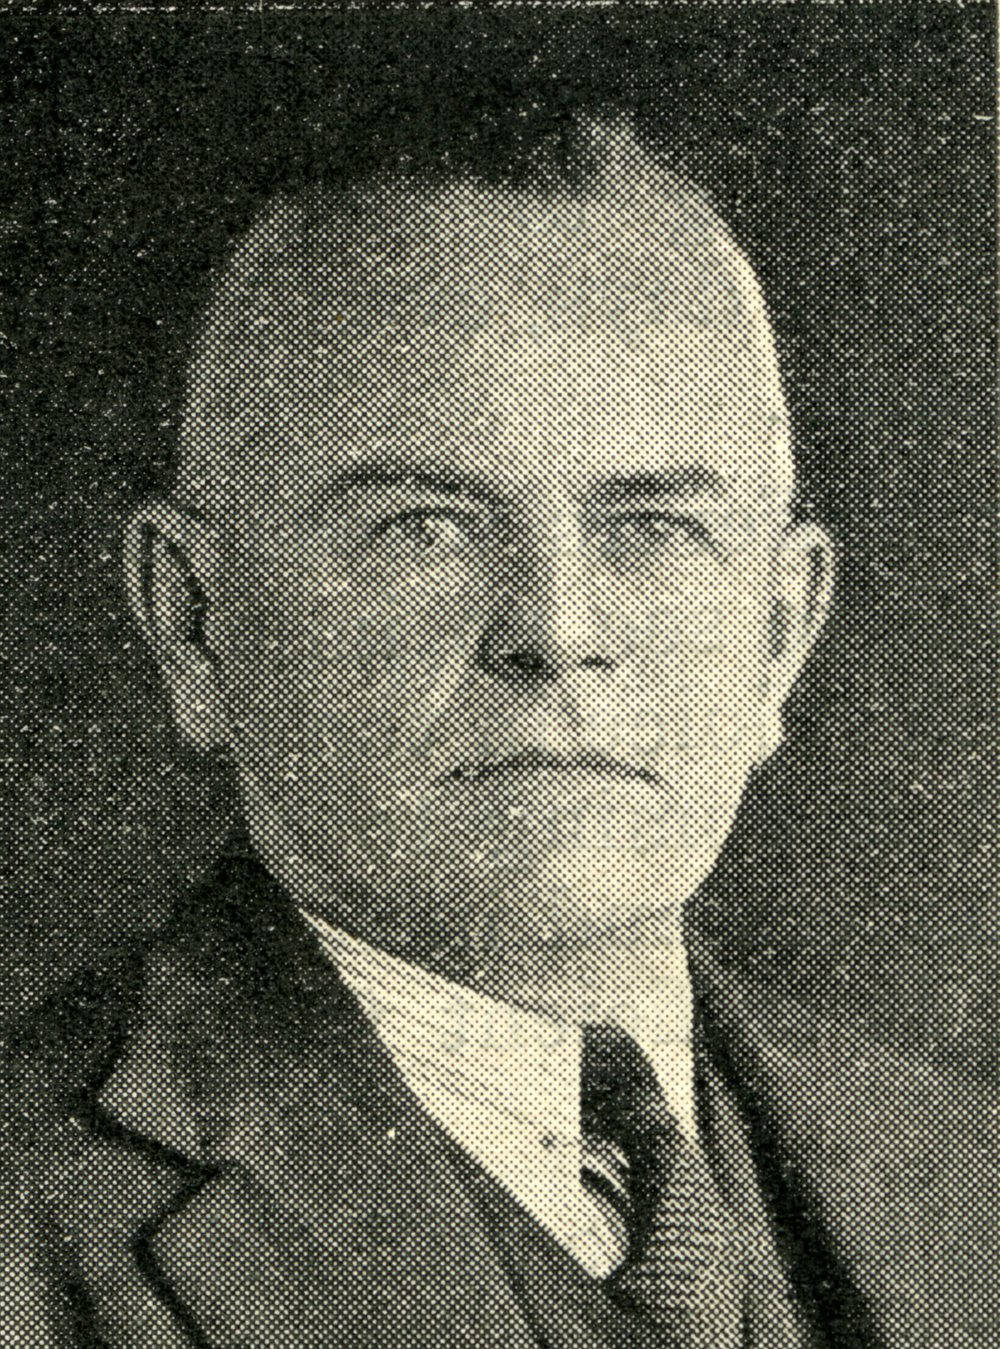 Gordon Winn